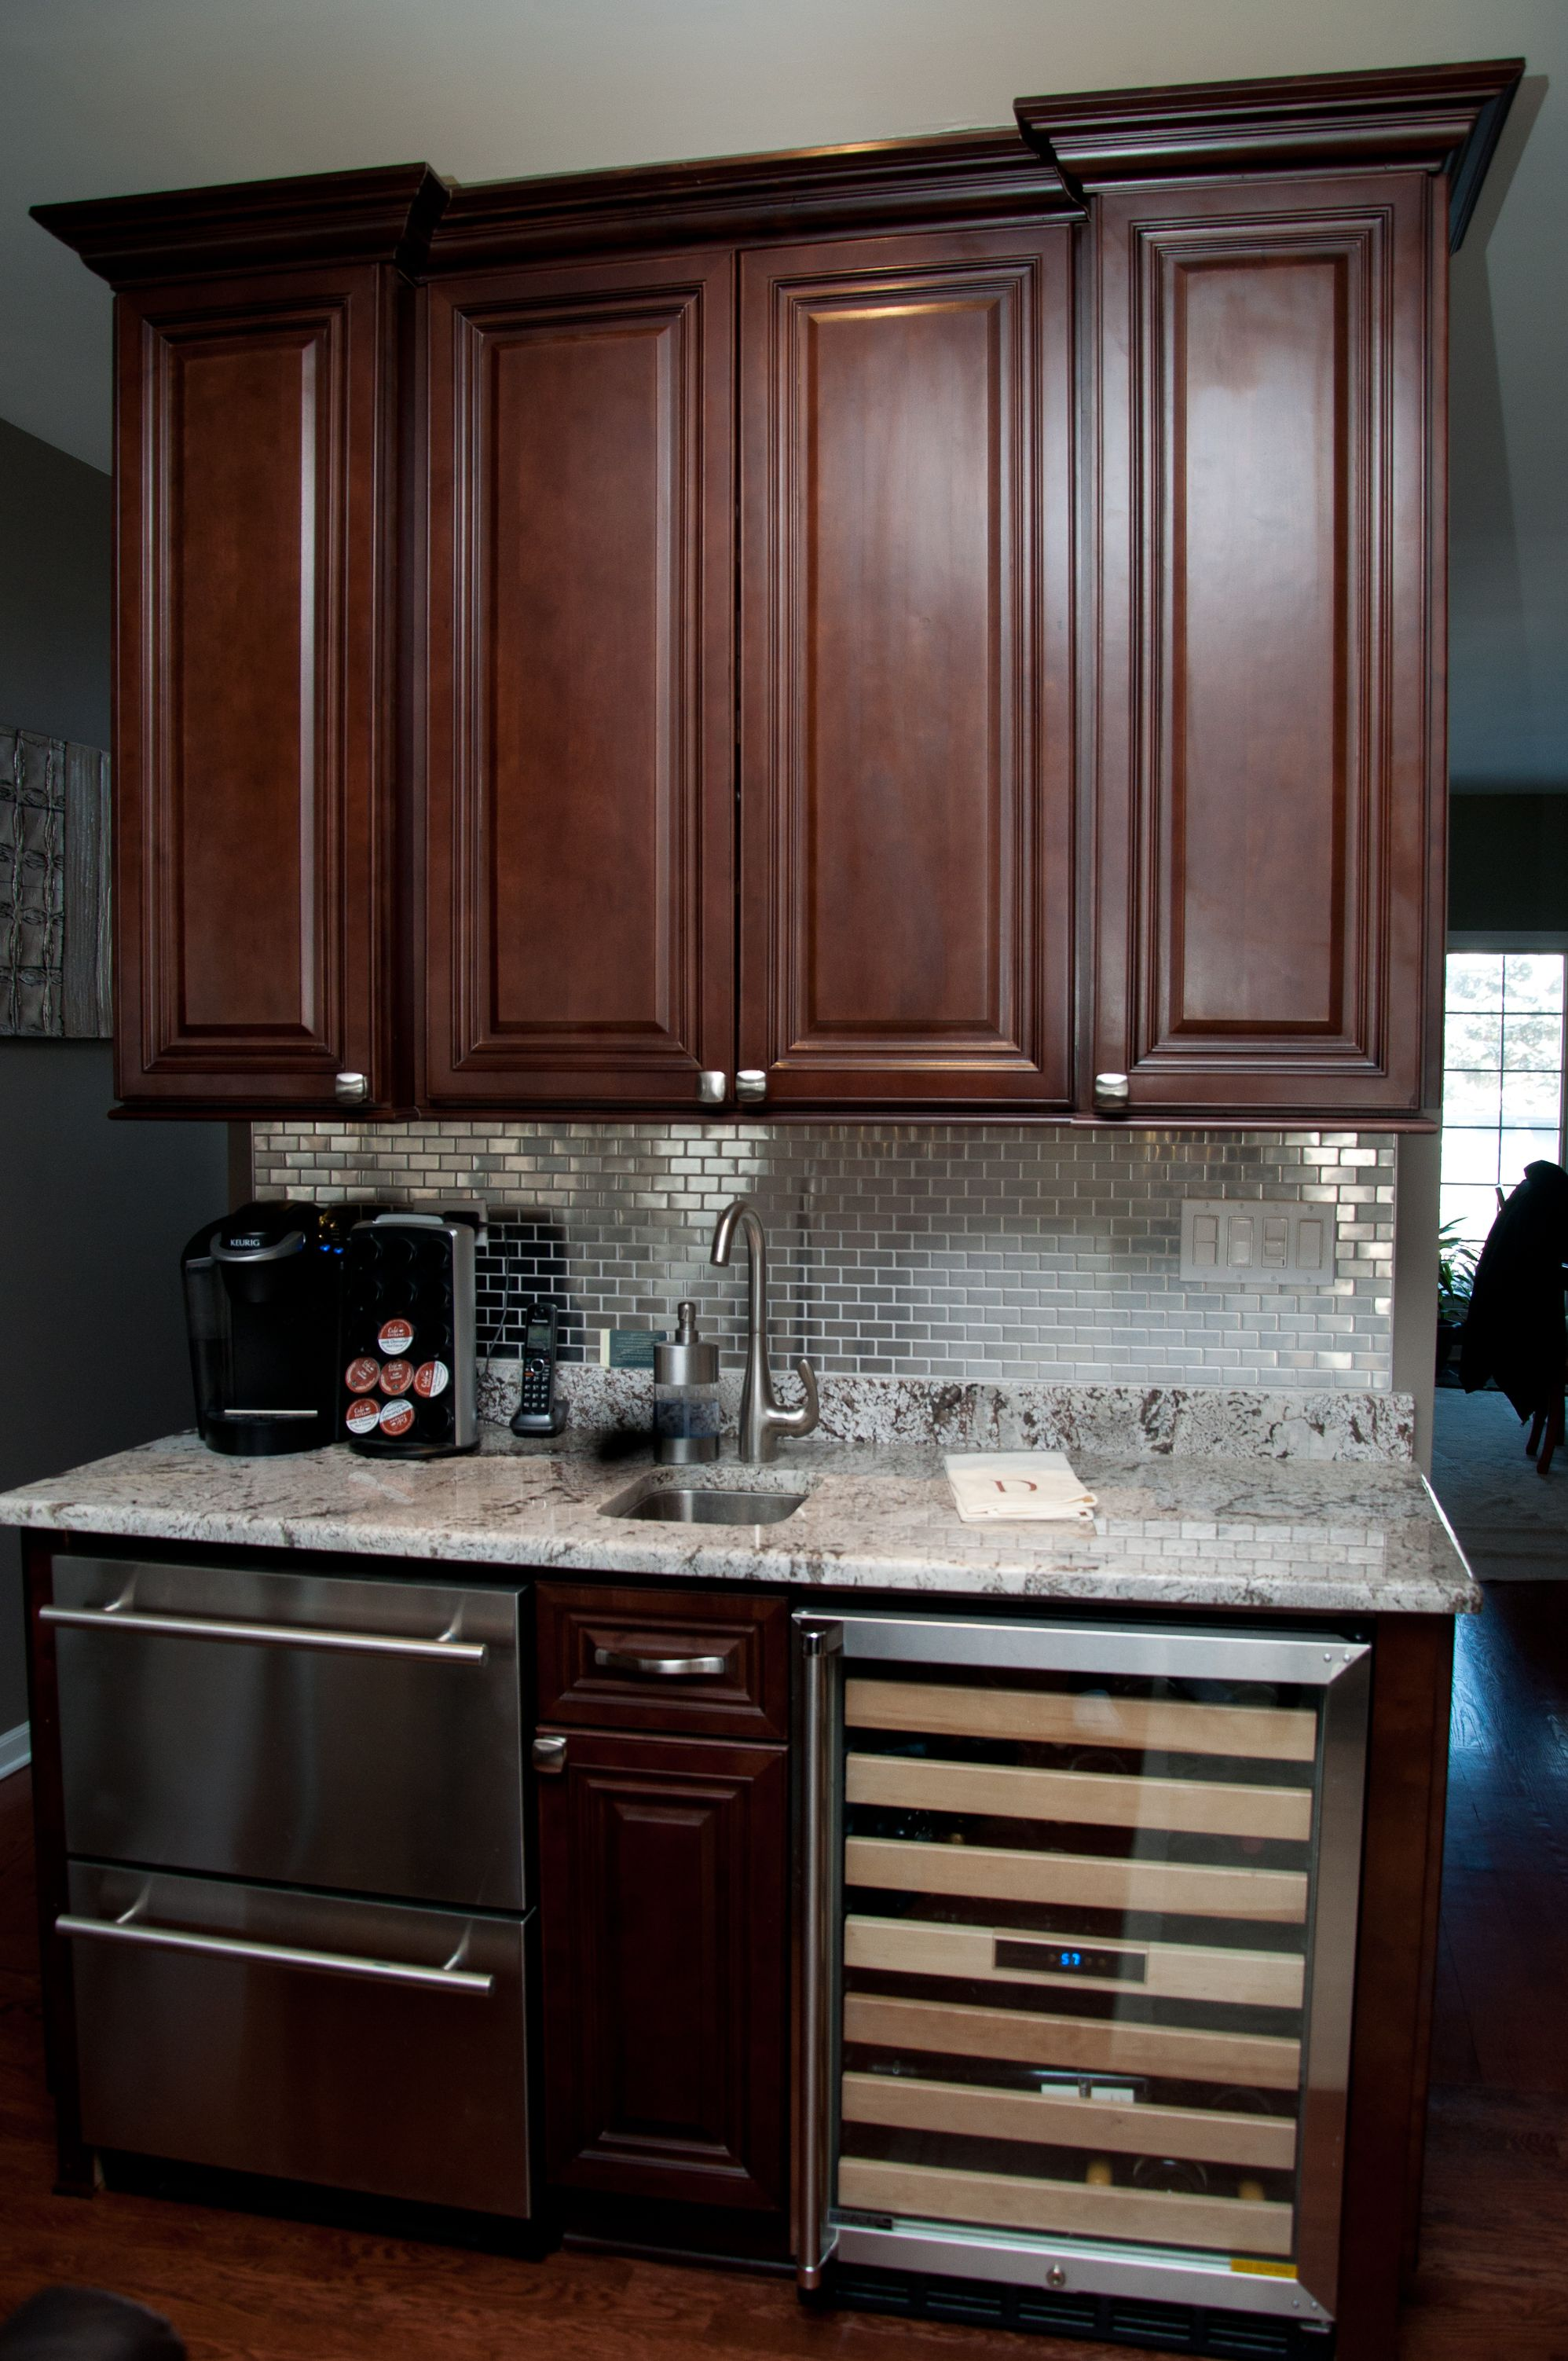 Choice Cabinet Raised The Bar Here The Perfect Landing Zone For All Your Bar Prep Needs What S Your Libation Of Choice New Kitchen Cabinet Wood Cabinets